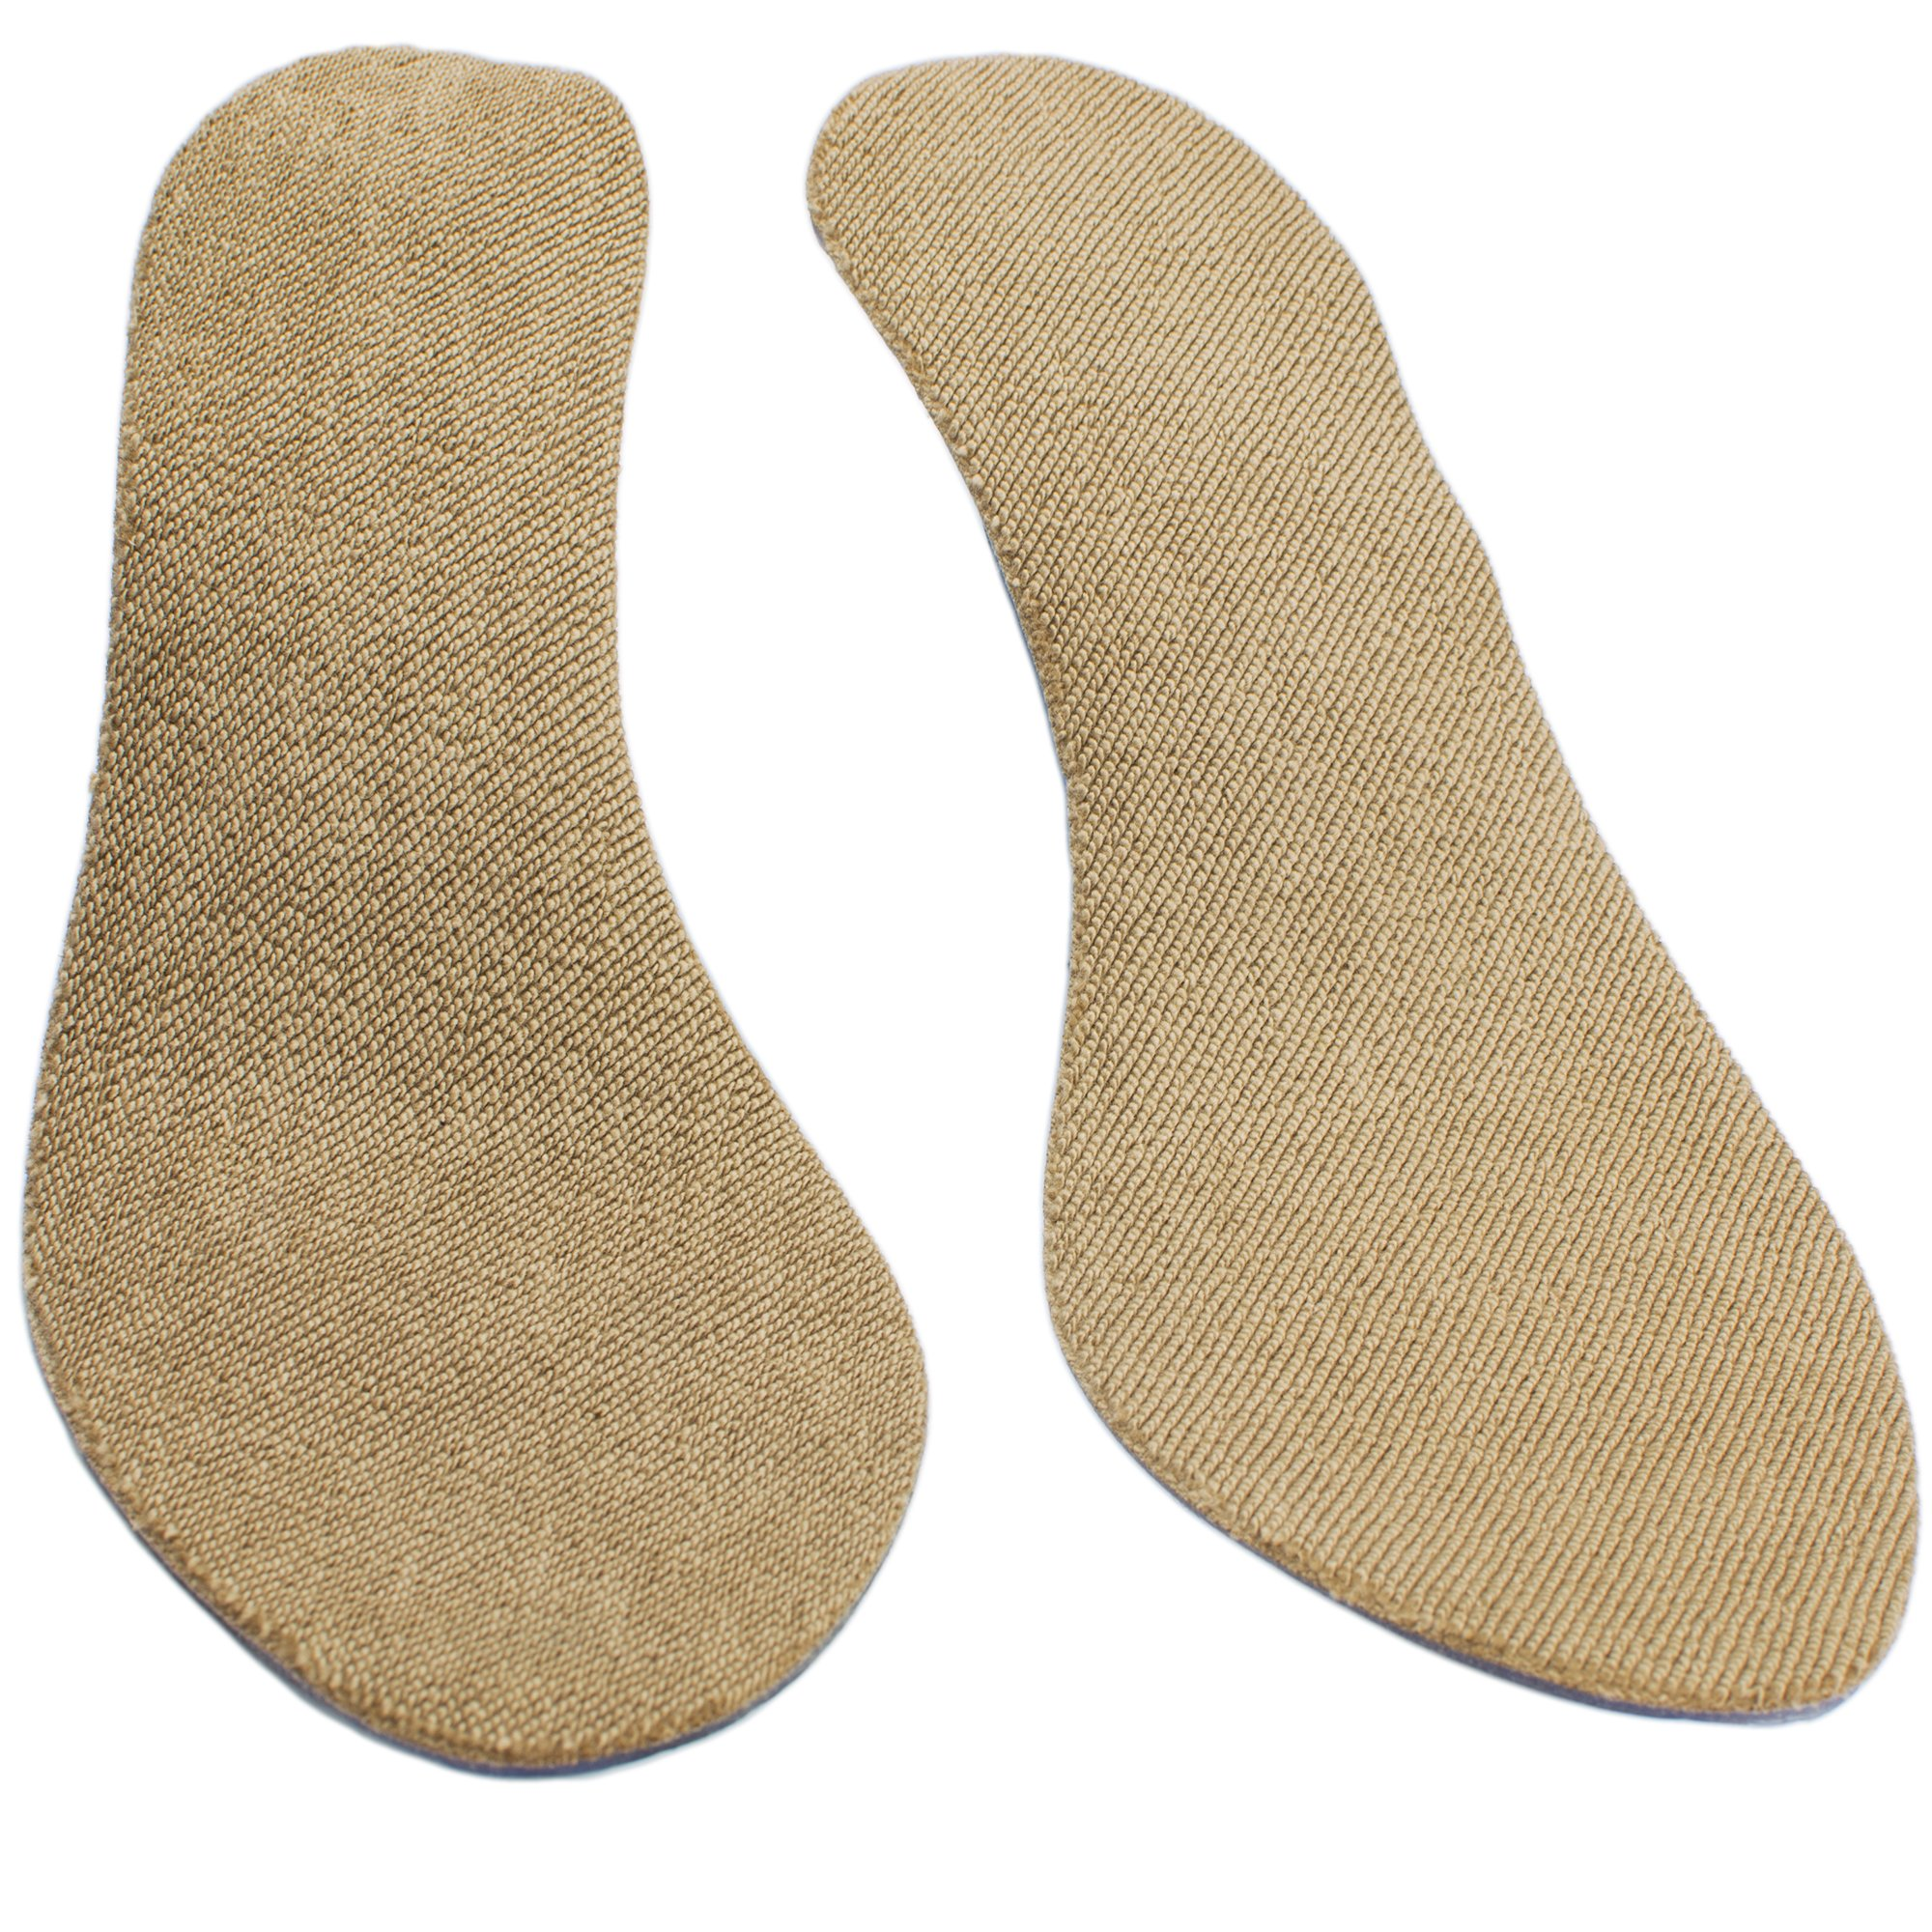 SoxsolS Antislip Cotton Flat Insert For Sockless Shoes Machine Washable Dryer Safe For Women Brown Size US 8 Euro 39